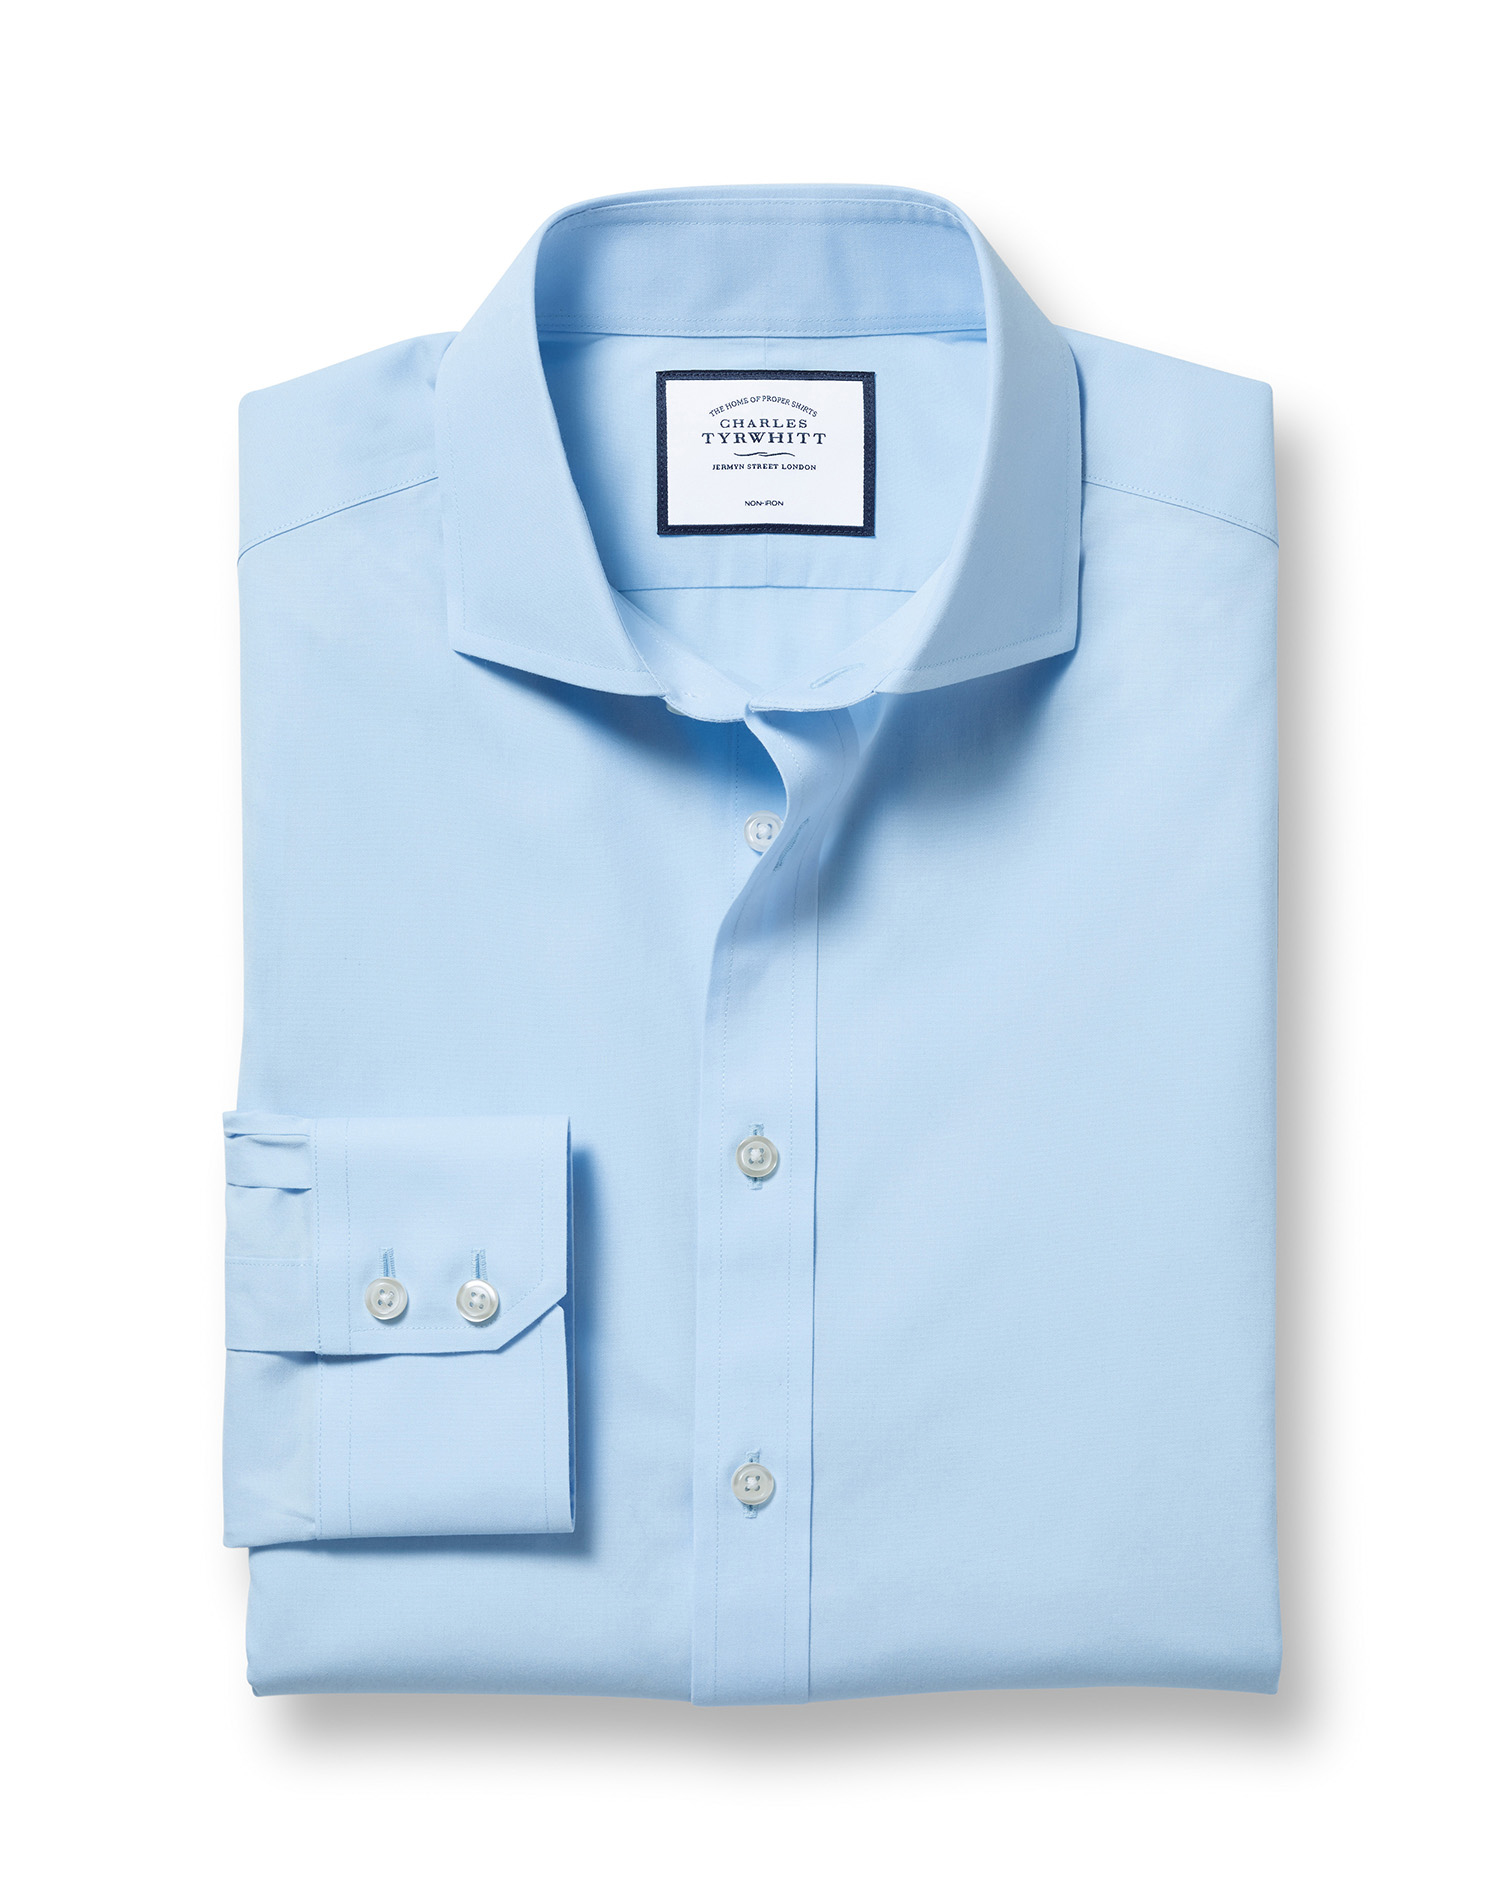 Extra Slim Fit Cutaway Non-Iron Poplin Sky Blue Cotton Formal Shirt Single Cuff Size 16.5/36 by Char